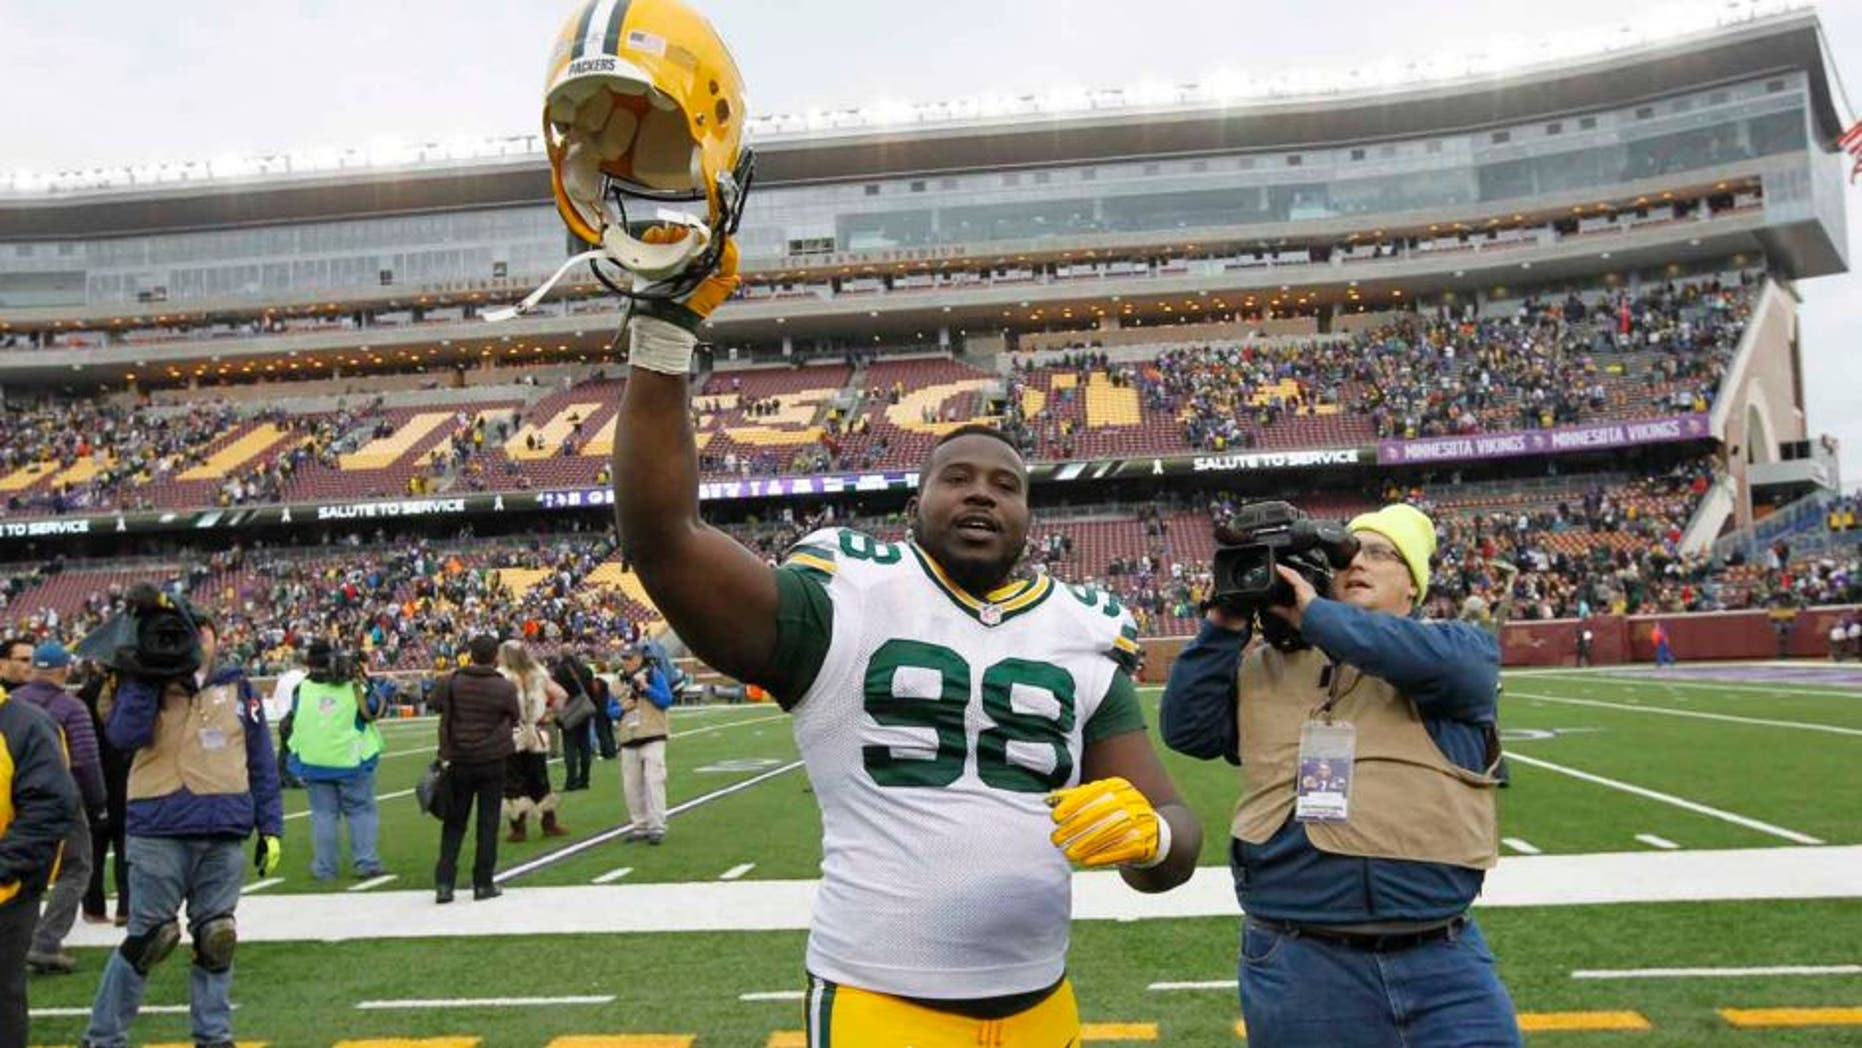 Green Bay Packers nose tackle Letroy Guion celebrates after the Packers' 24-21 win against the Minnesota Vikings in Minneapolis.